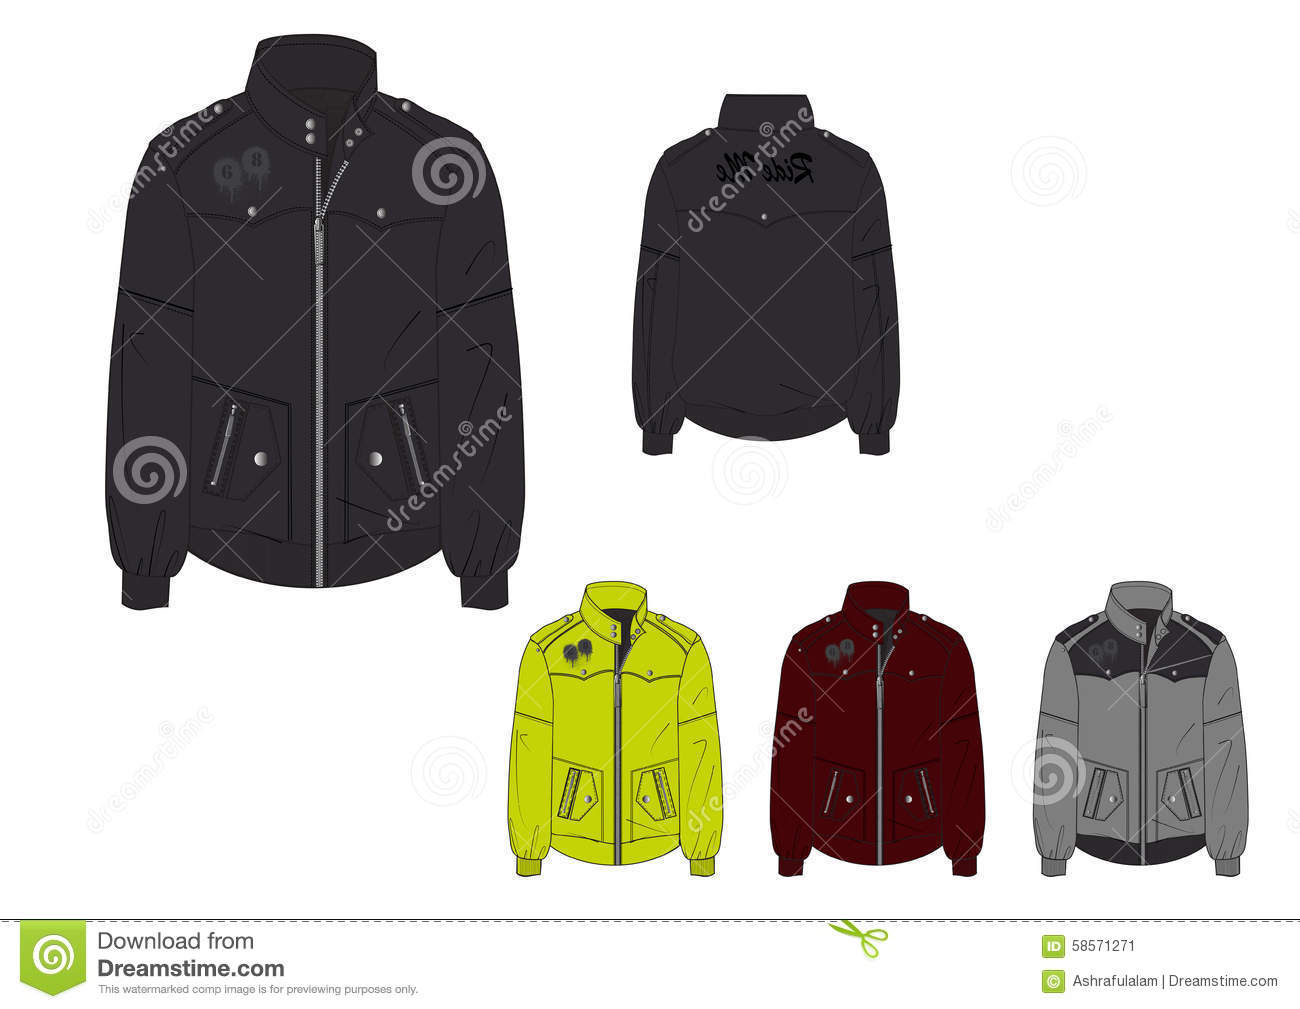 Male Hoodless Windbreaker With Waterproof Jacket Design Template